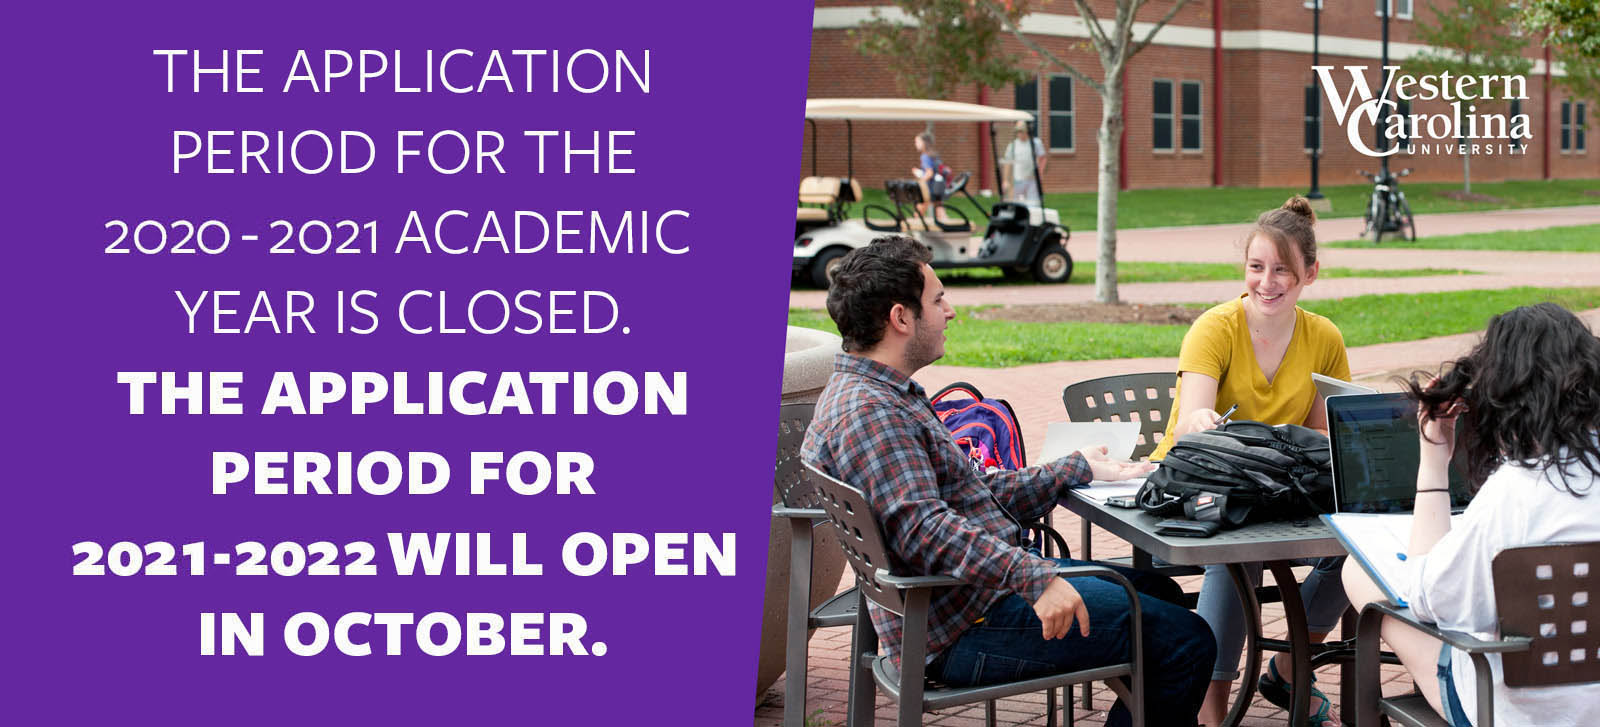 The application period for the 2020-2021 academic year is closed. The application period for 2020-2021 will open in october.